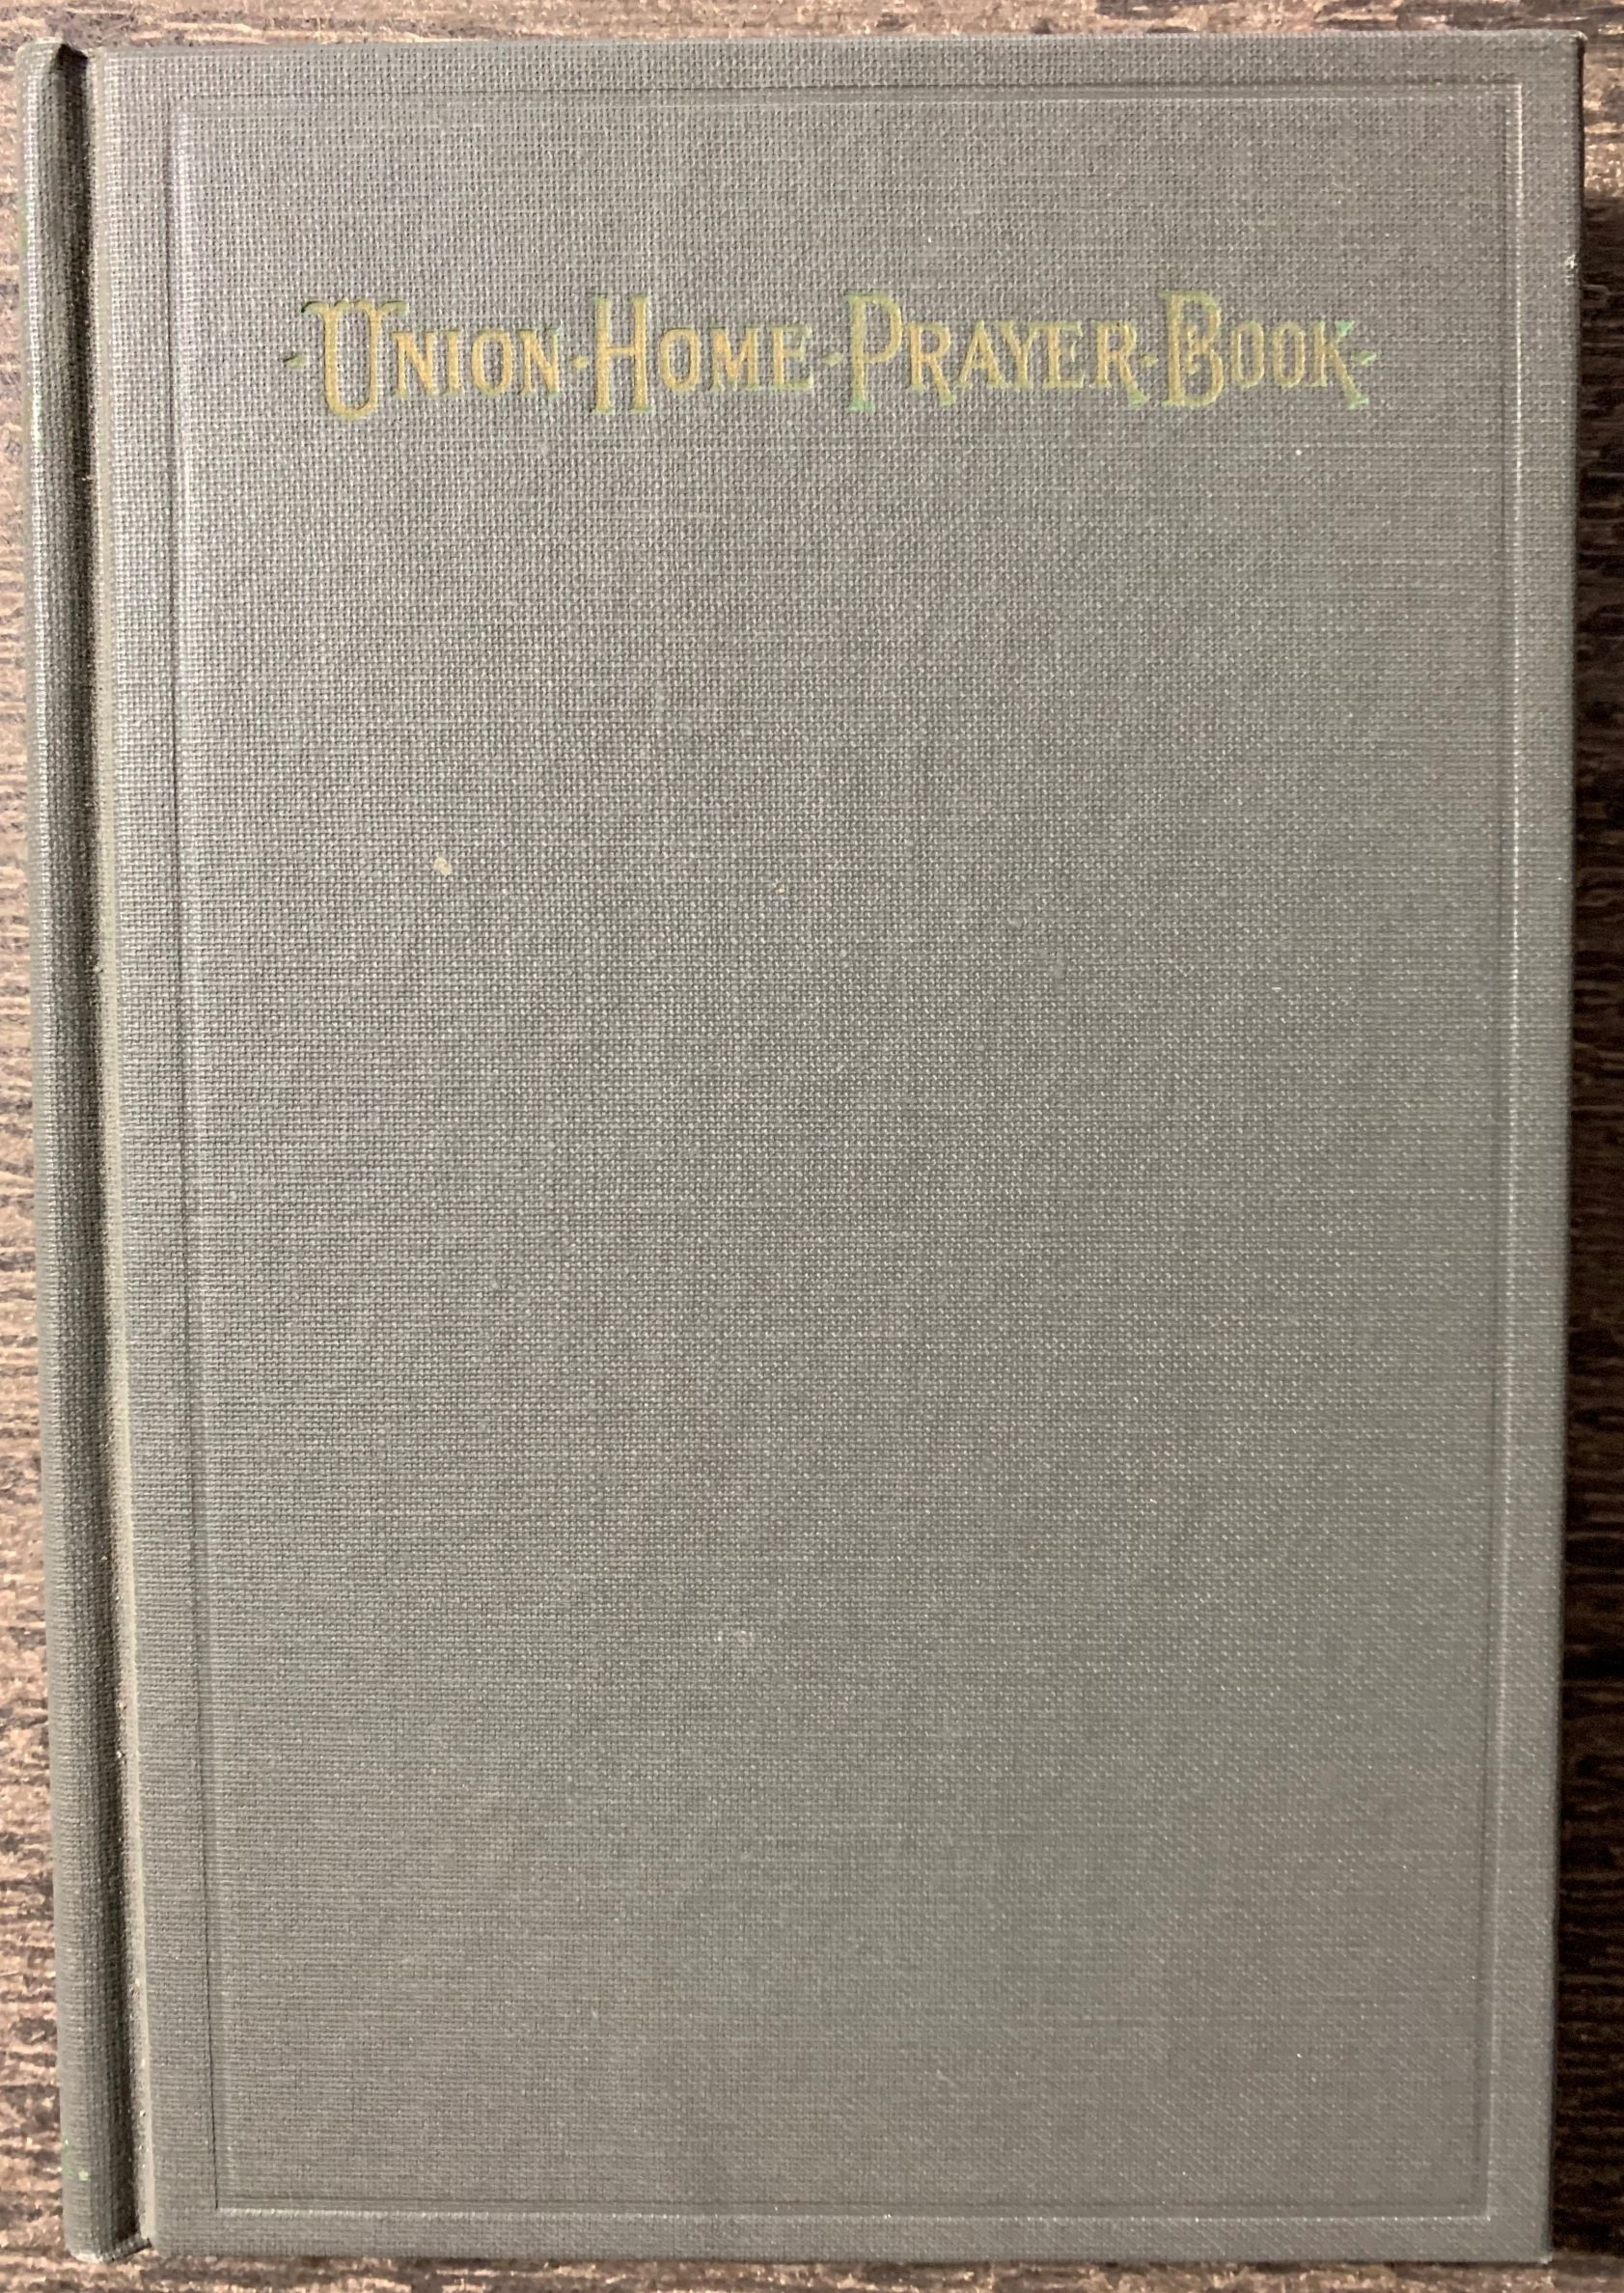 Image for Union Home Prayer Book.